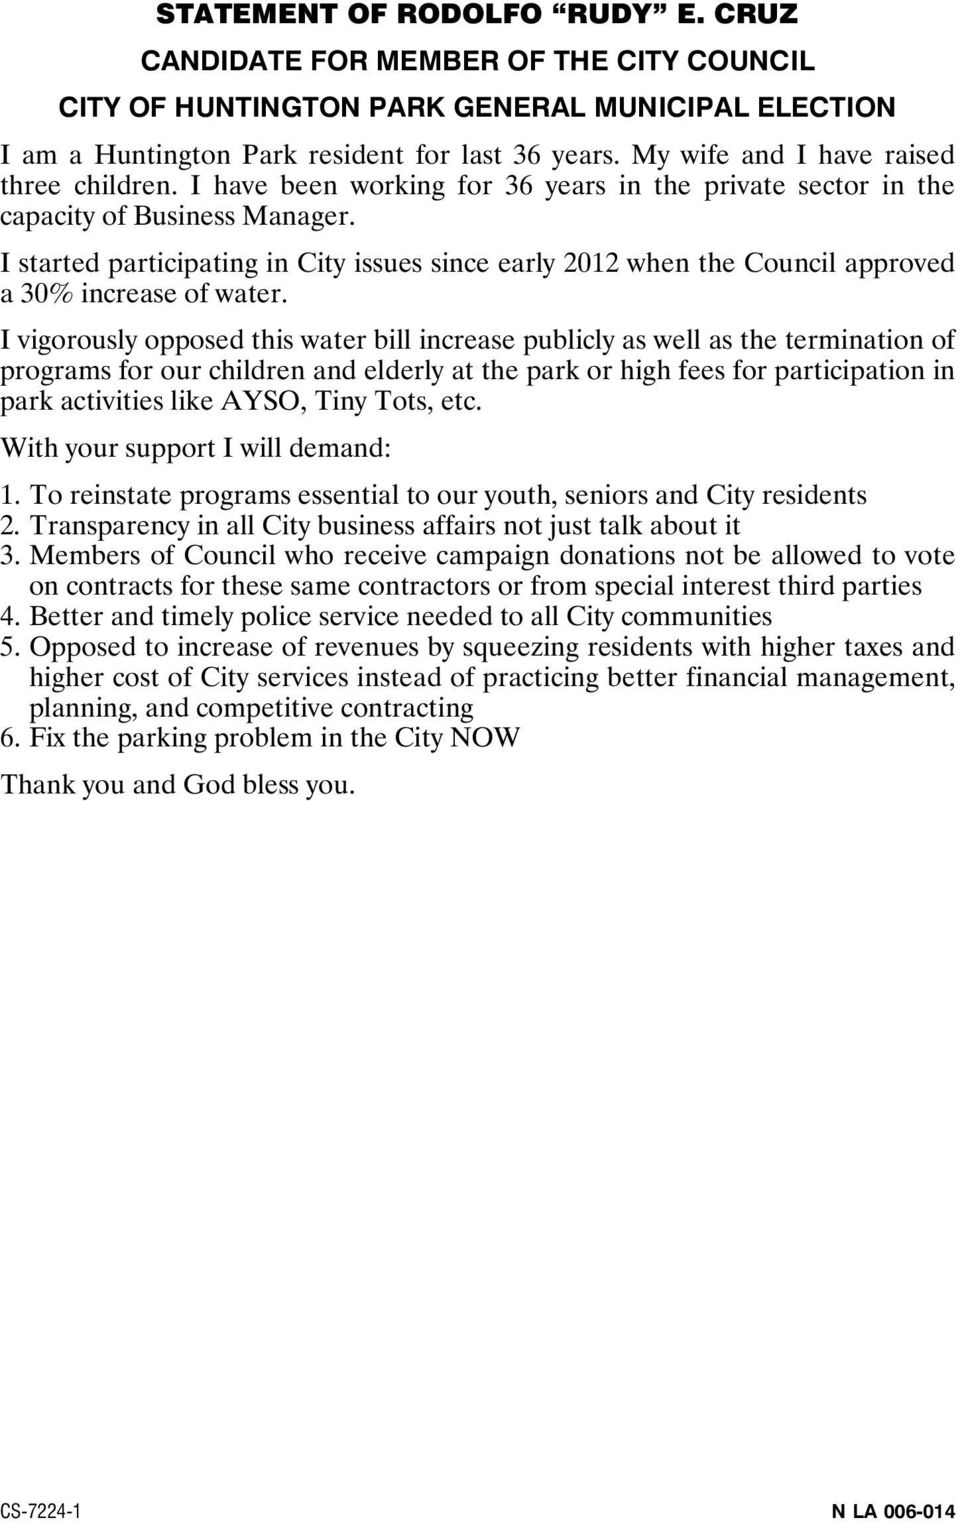 I started participating in City issues since early 2012 when the Council approved a 30% increase of water.